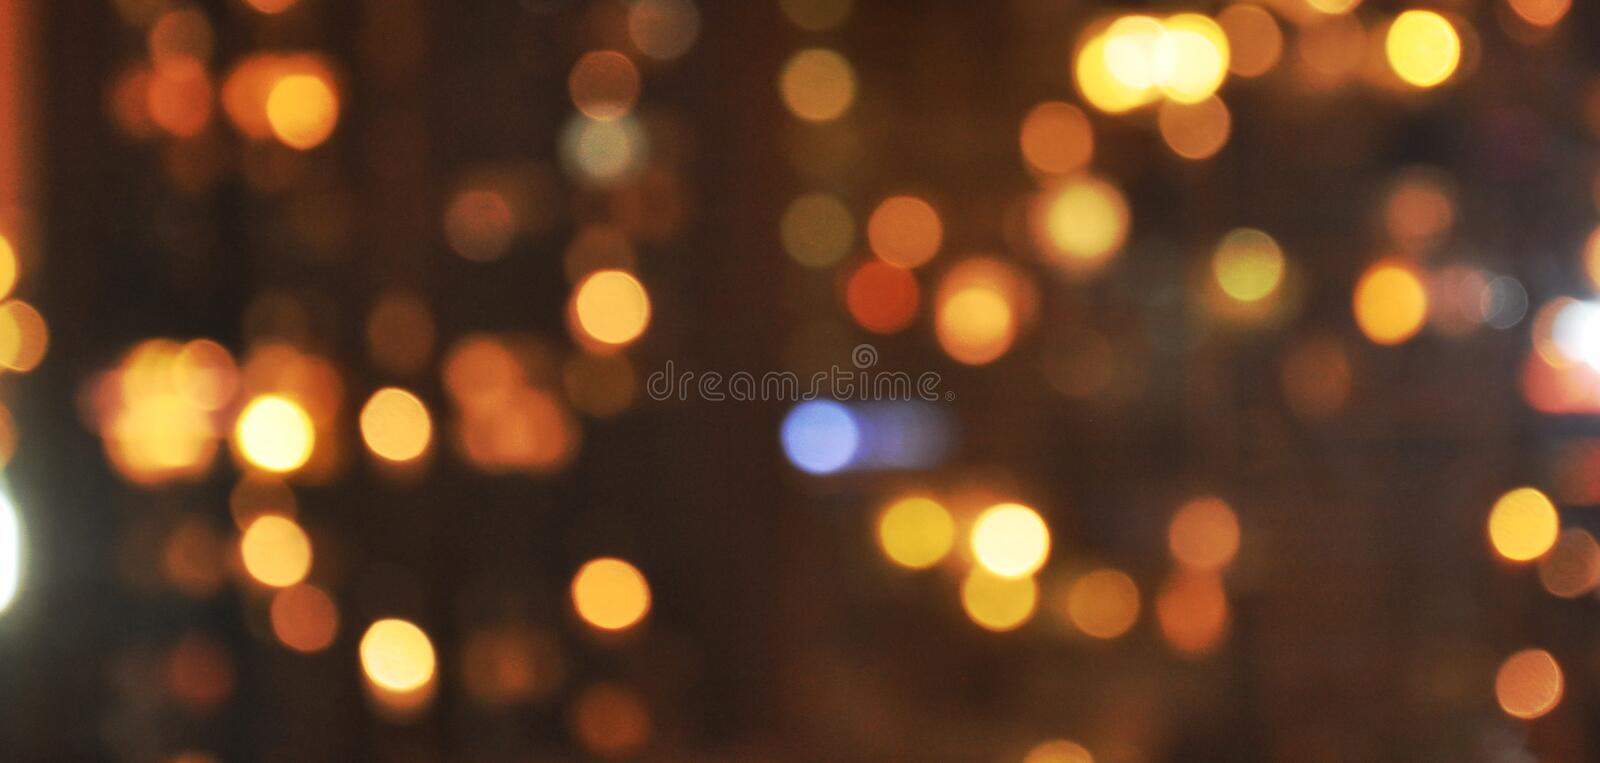 Download Blurry City Lights Background. Stock Image - Image: 7506879